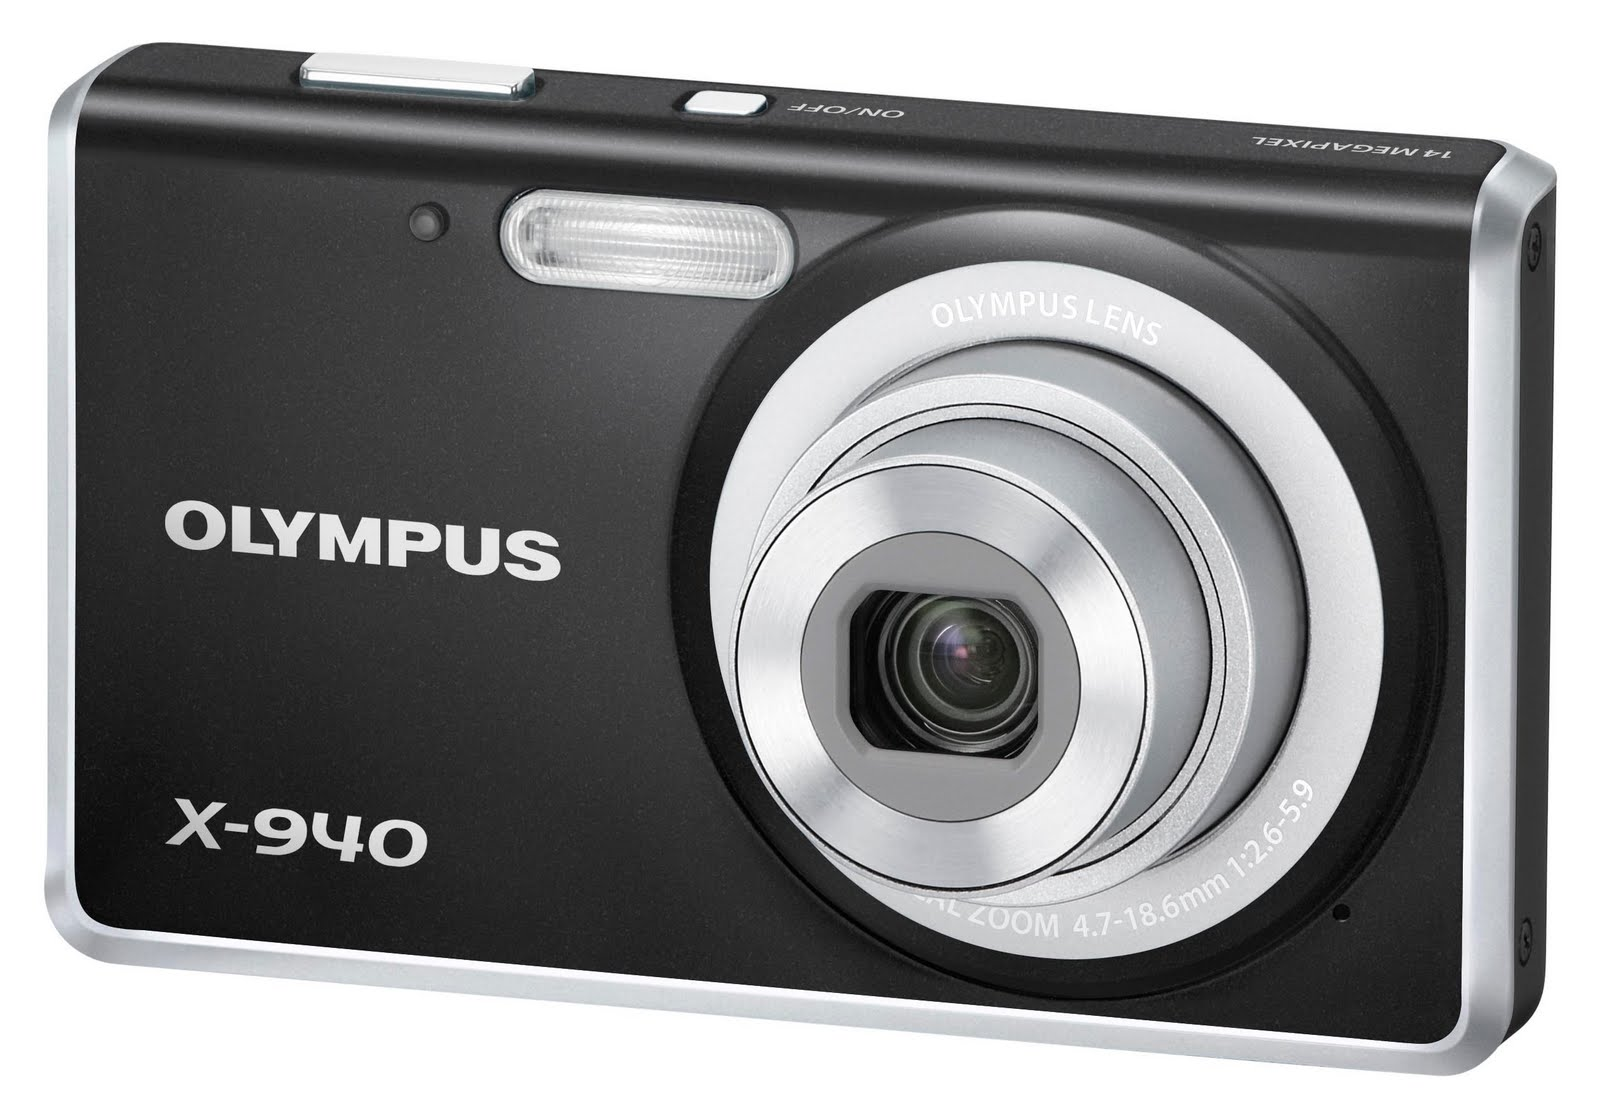 olympus x 940 digital camera offers an incredible 14 megapixel resolution which will enable you to produce poster size prints or crop without losing detail